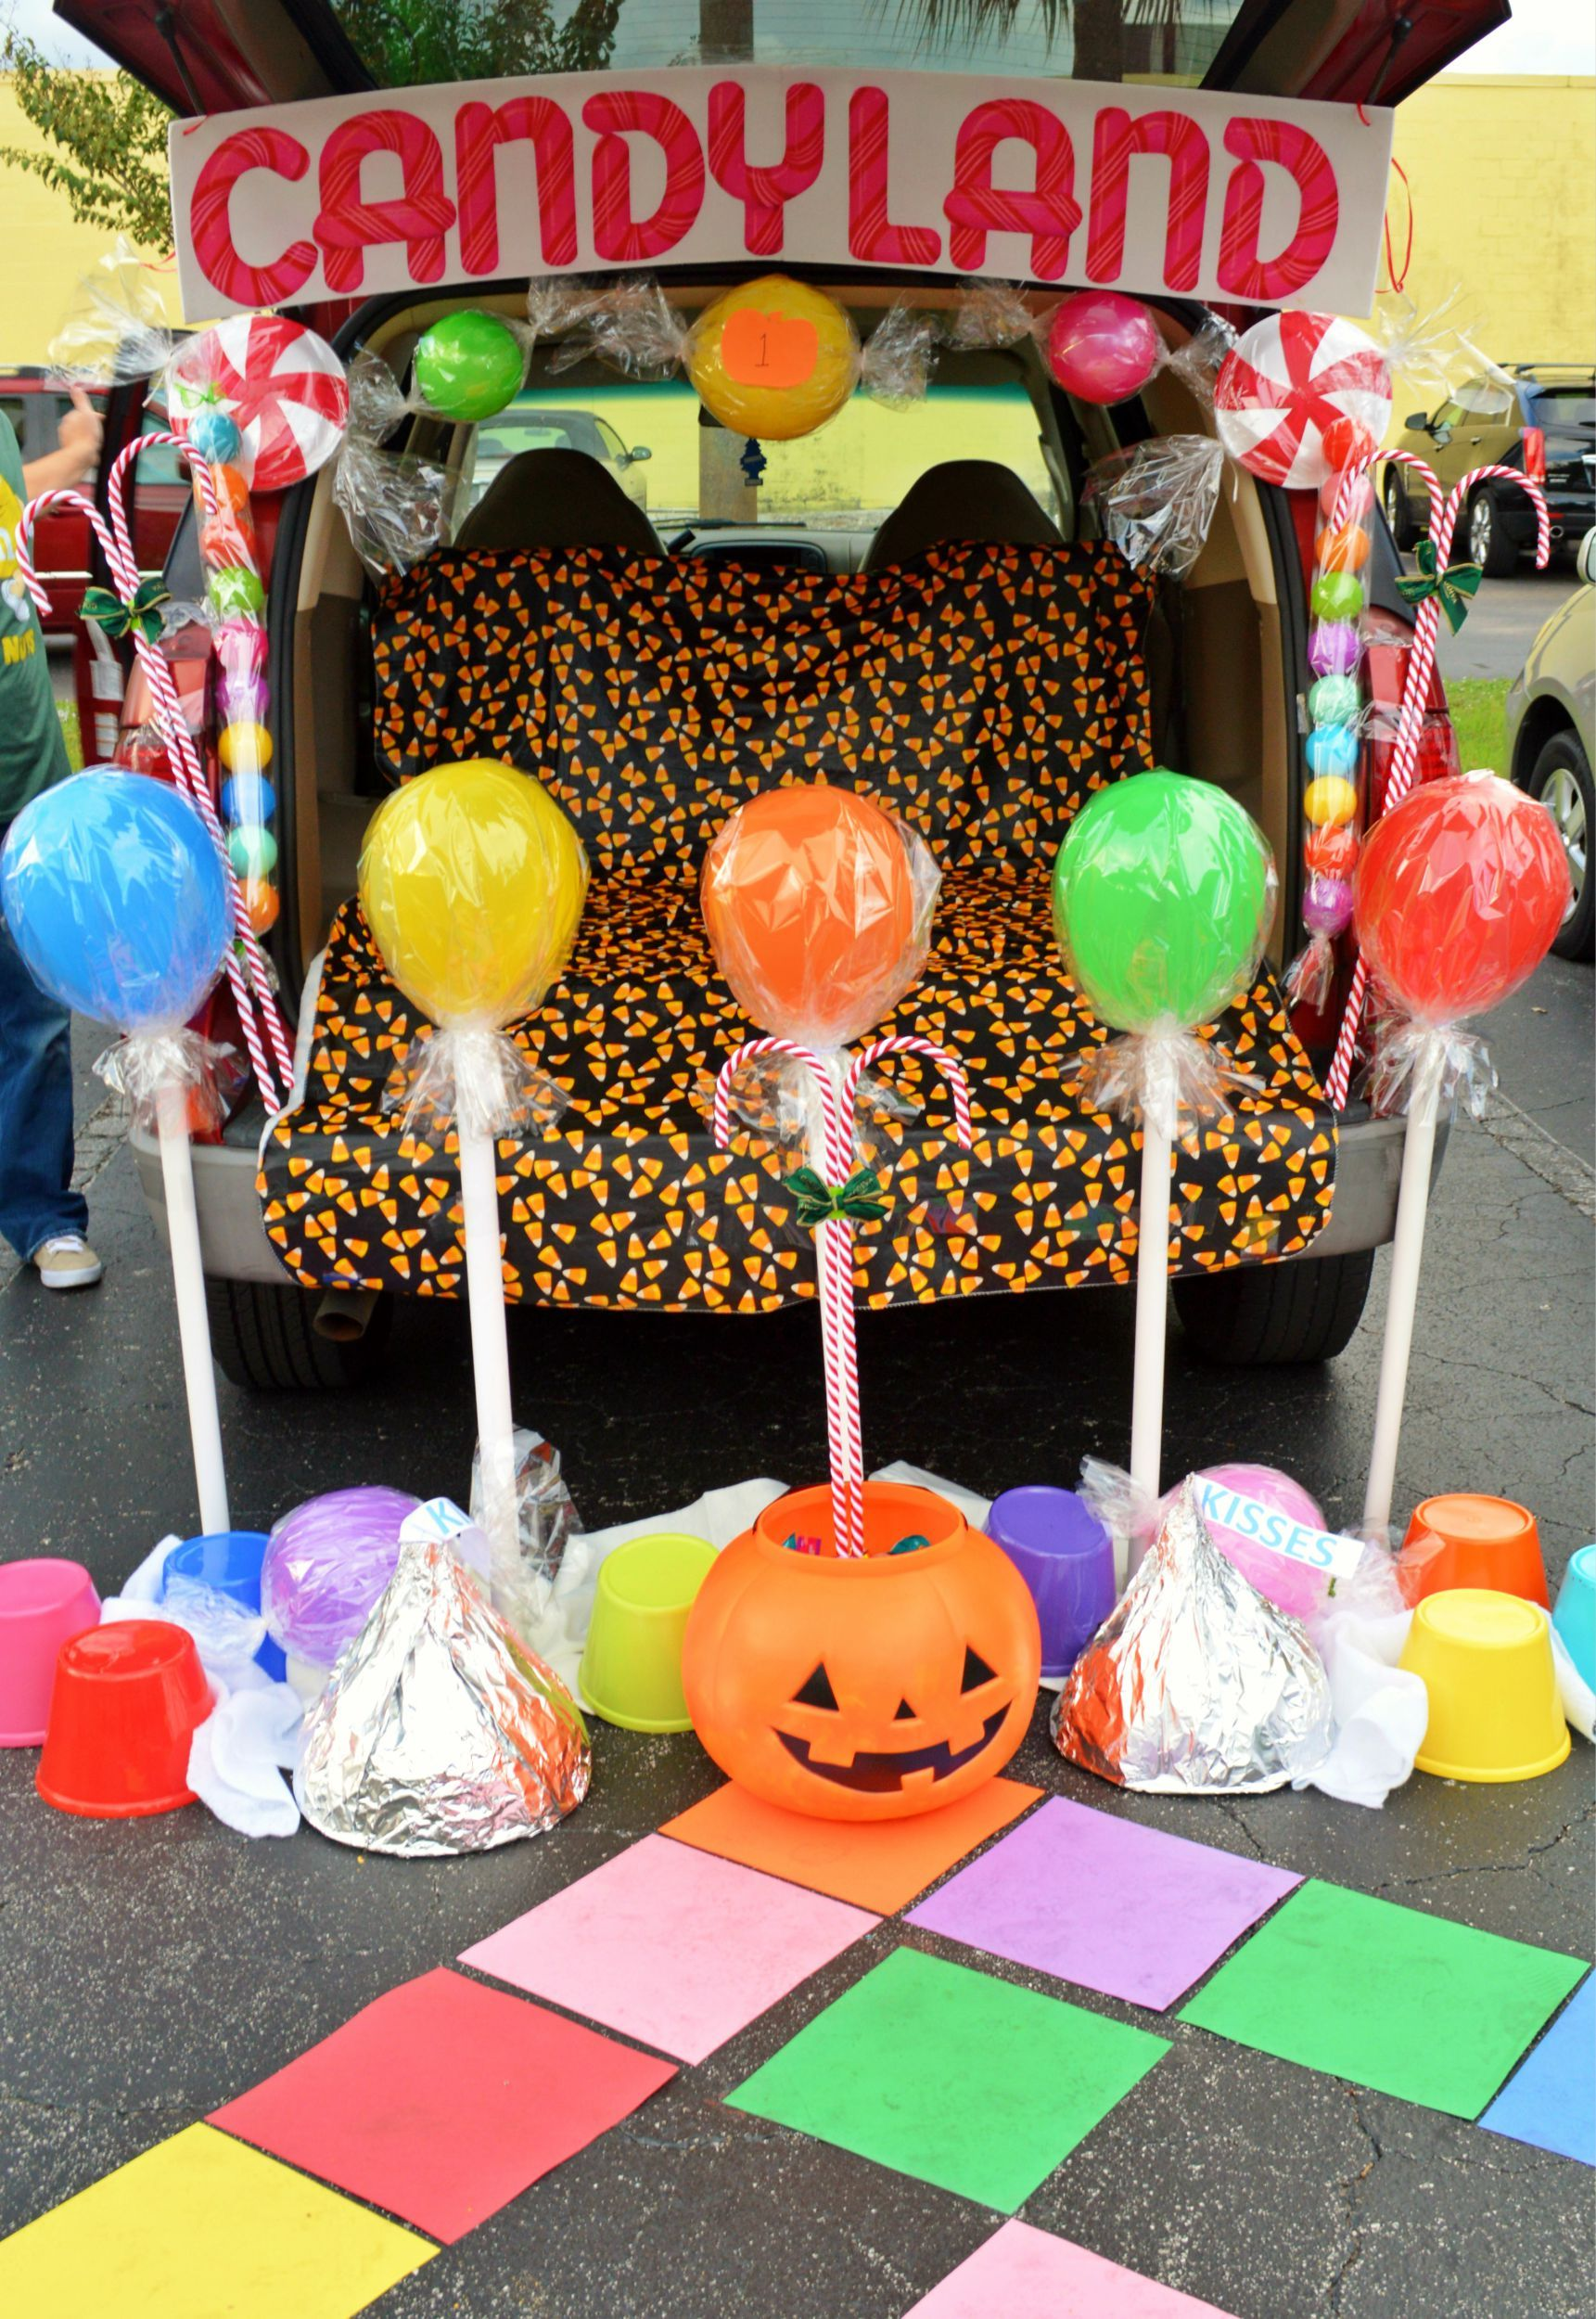 Life-Size Candyland: Halloween Edition